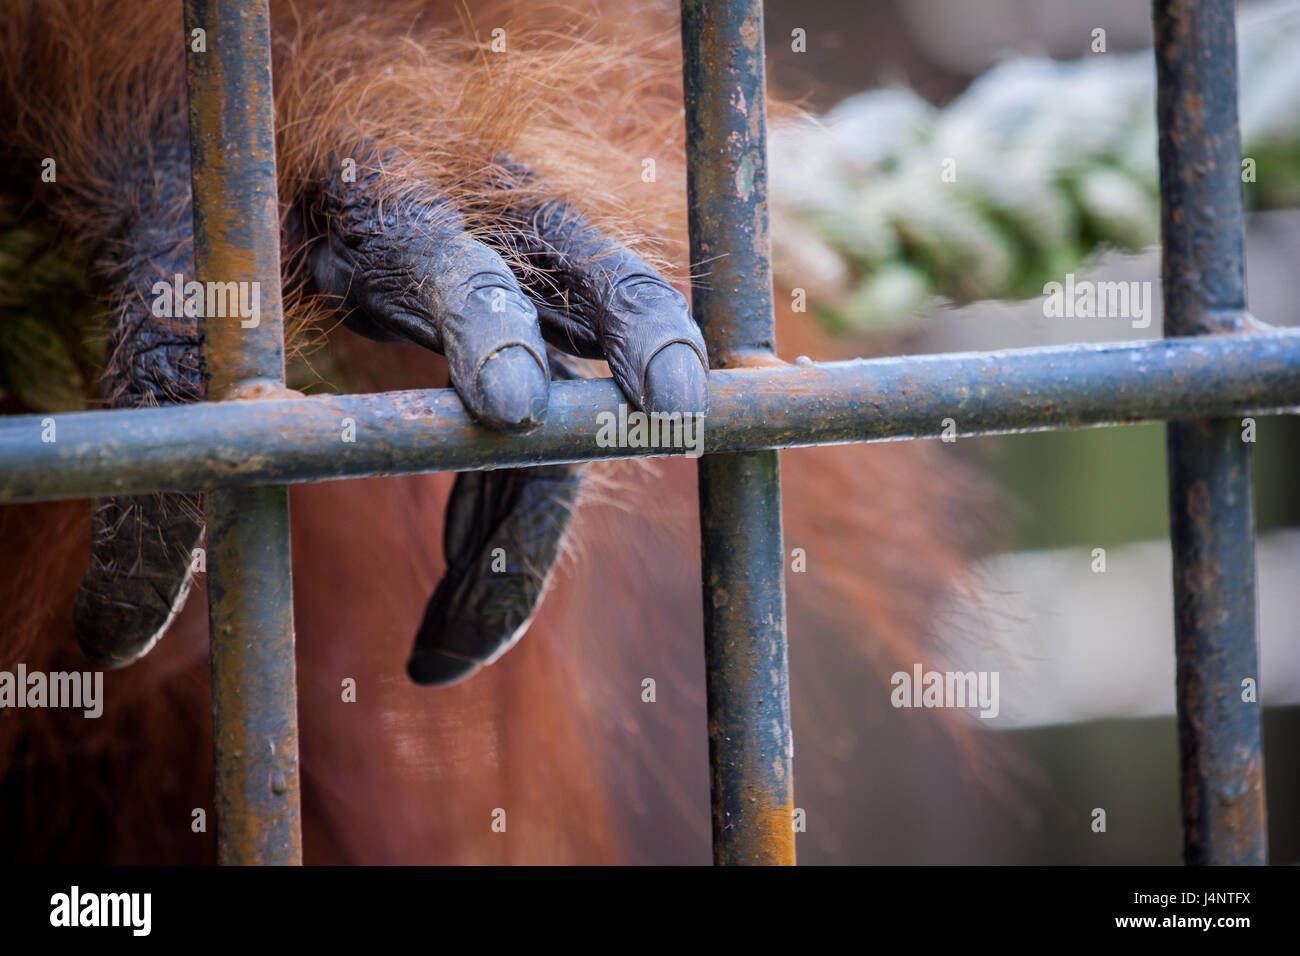 Orangutan hand touching cage iron bars in its captivated state. Orangutans are an endangered species and often need - Stock Image